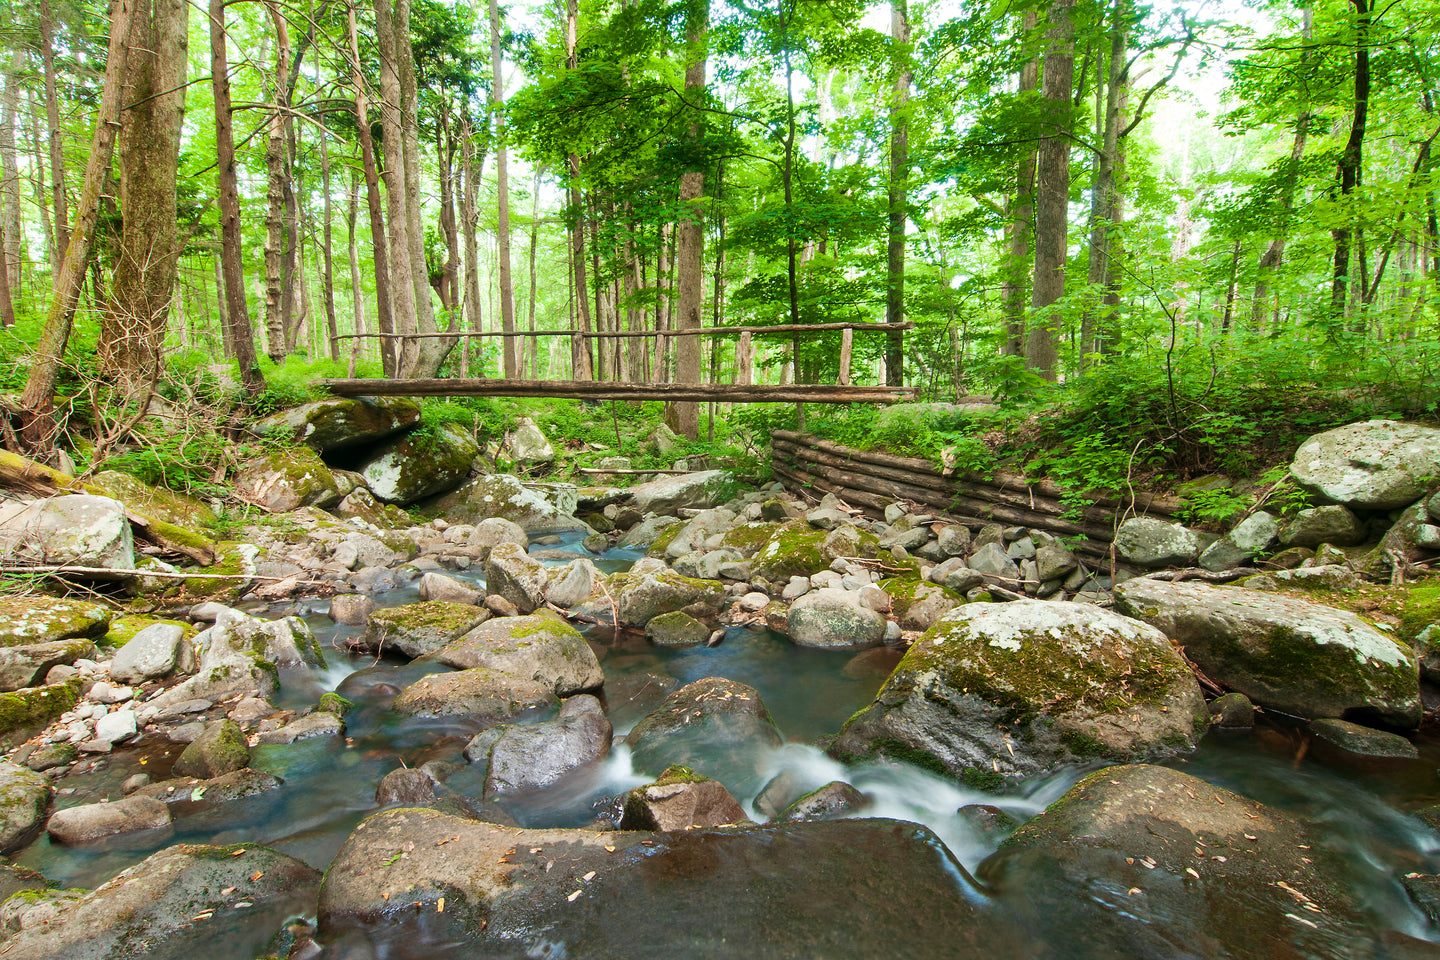 Footbridge in the Forest